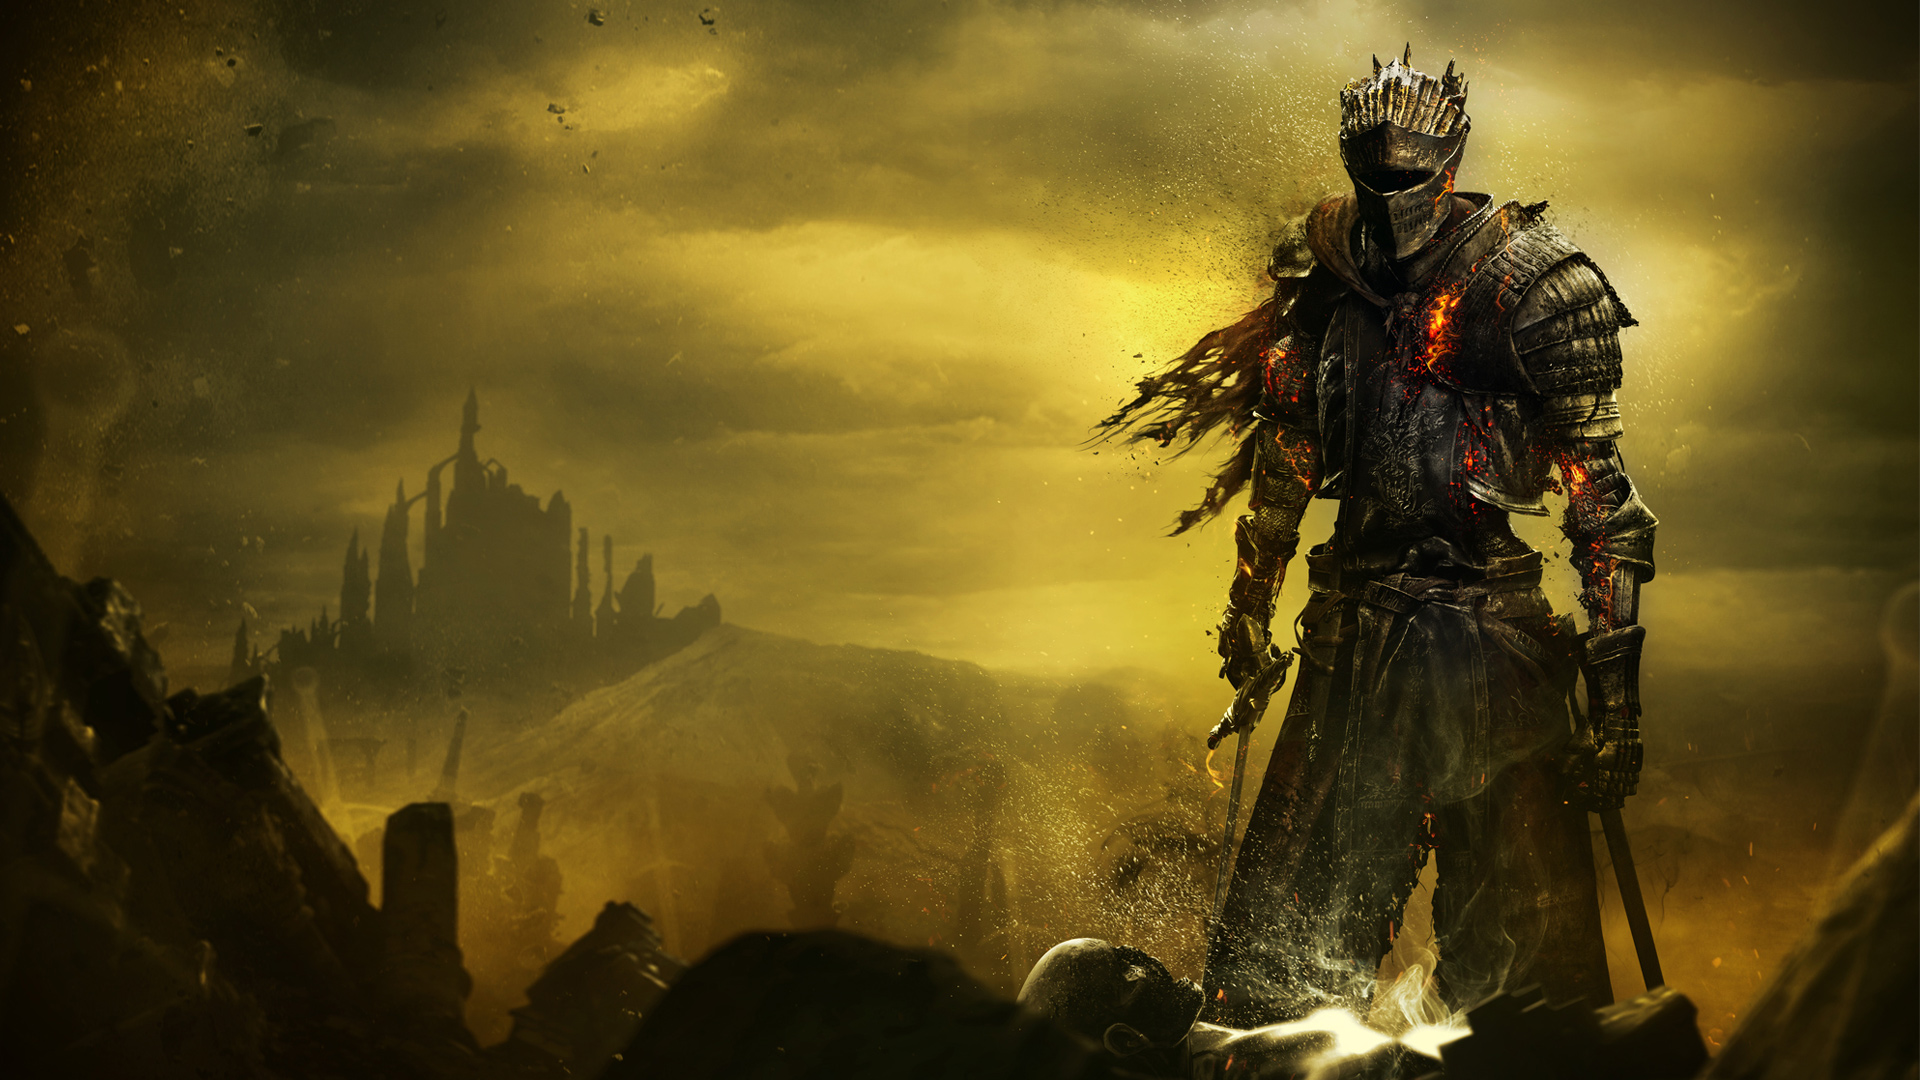 Soul of Cinder Dark Souls 3 wallpaper